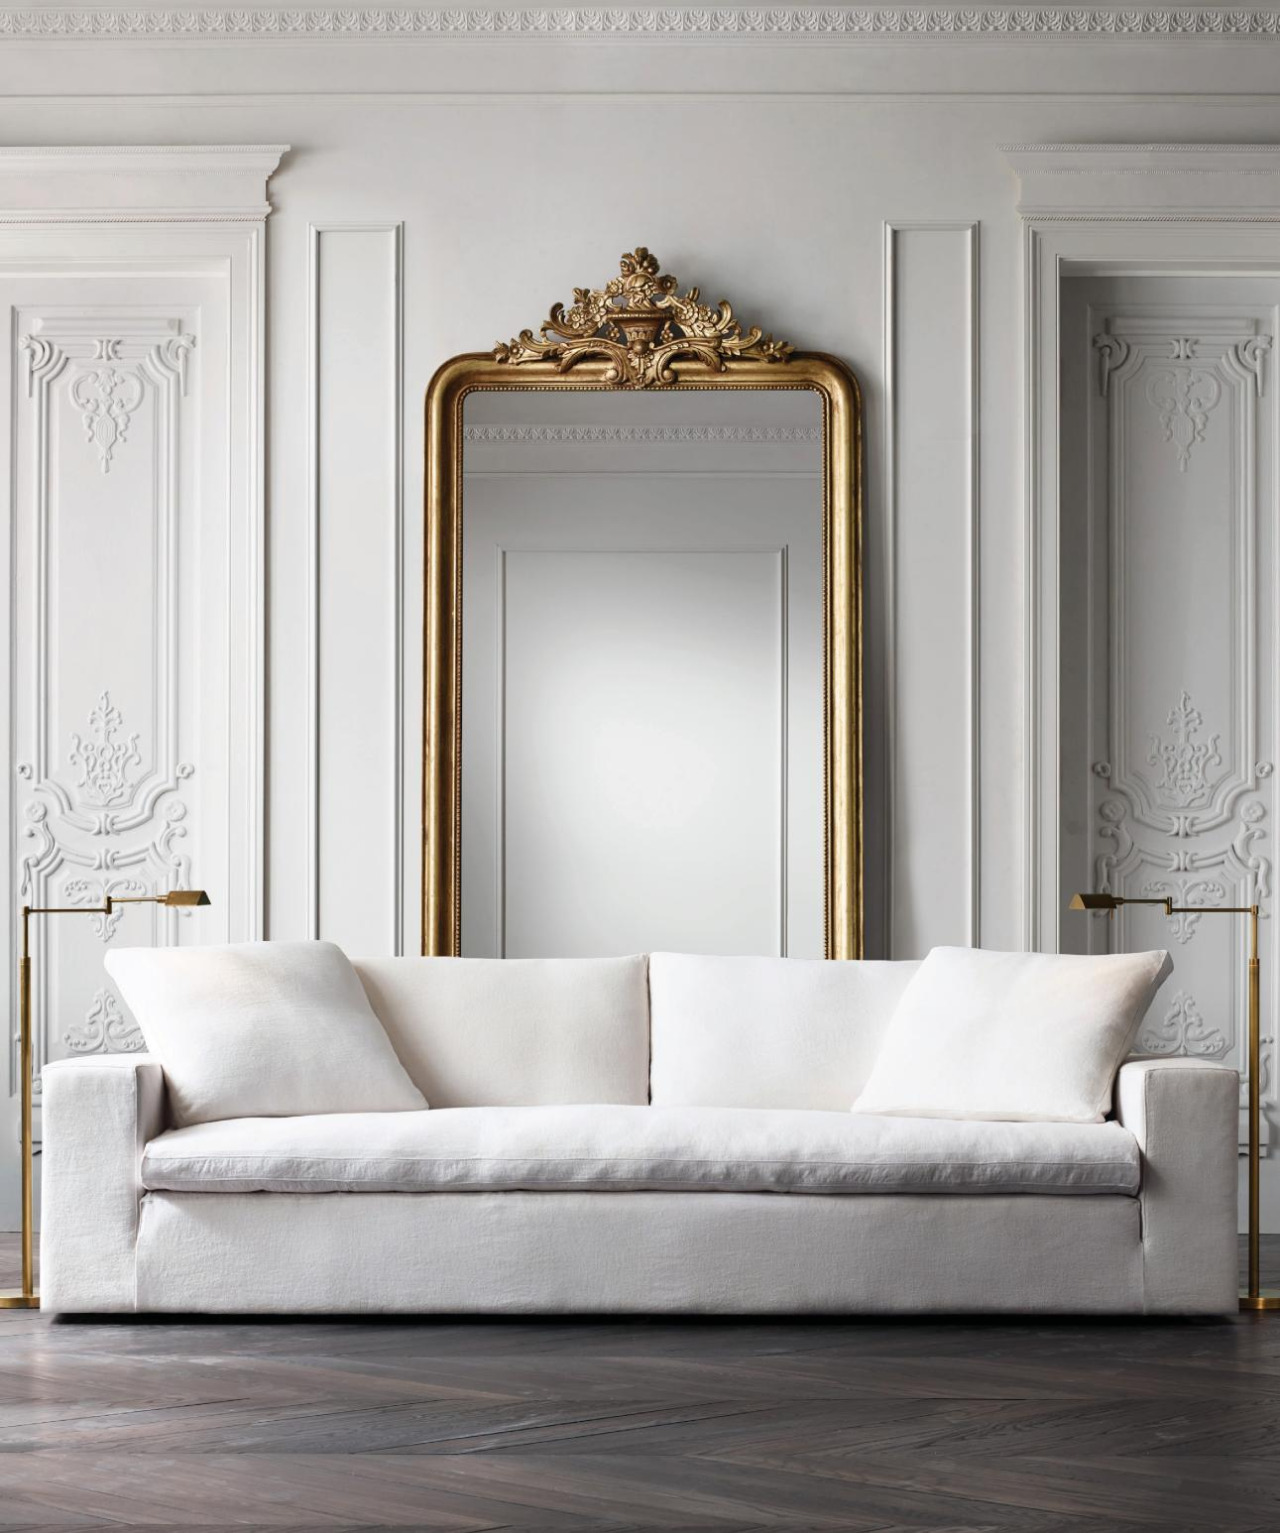 Awesome Stunning Wall Mirror Designs For Your Living Room Decor Wall Mirror Designs  Stunning Wall Mirror Designs